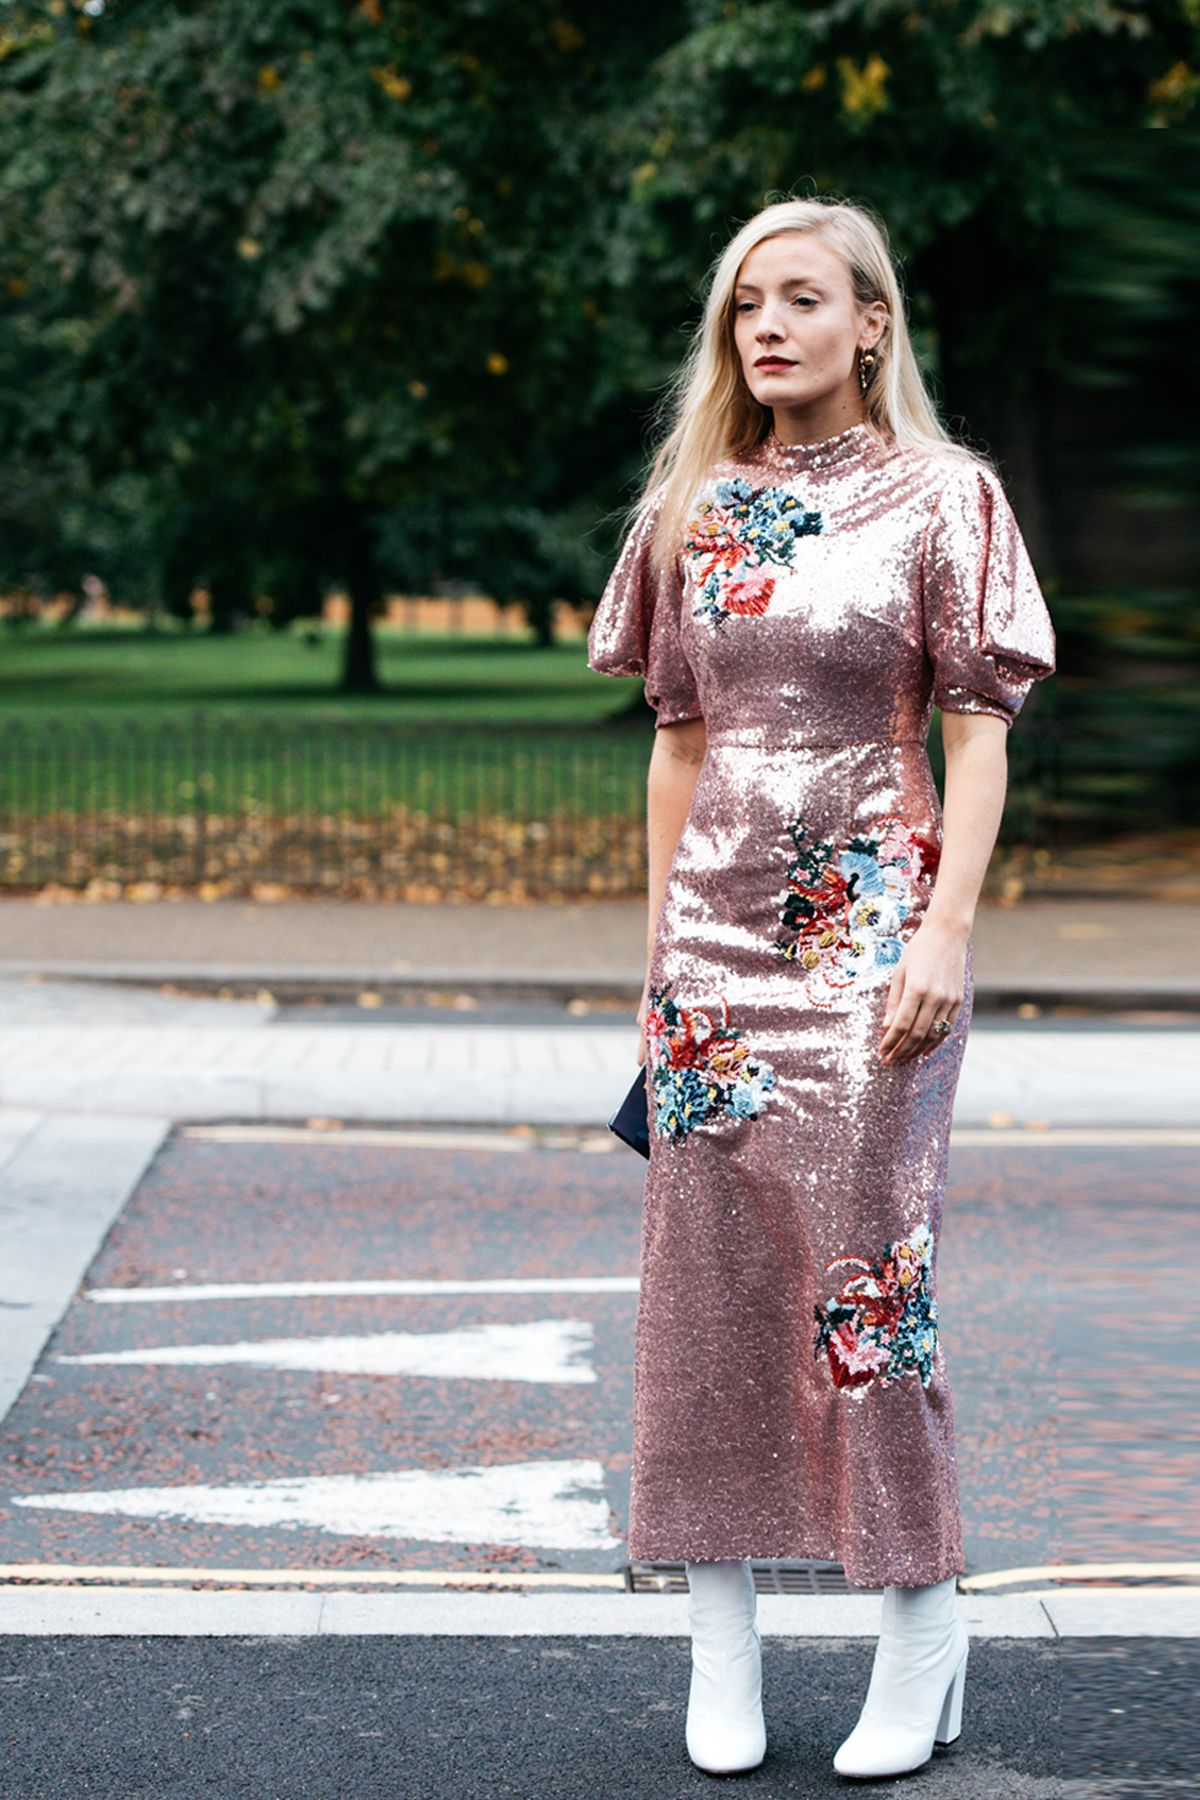 Wedding attendee dresses  Sequins and velvet and ruffles galore Party season has officially